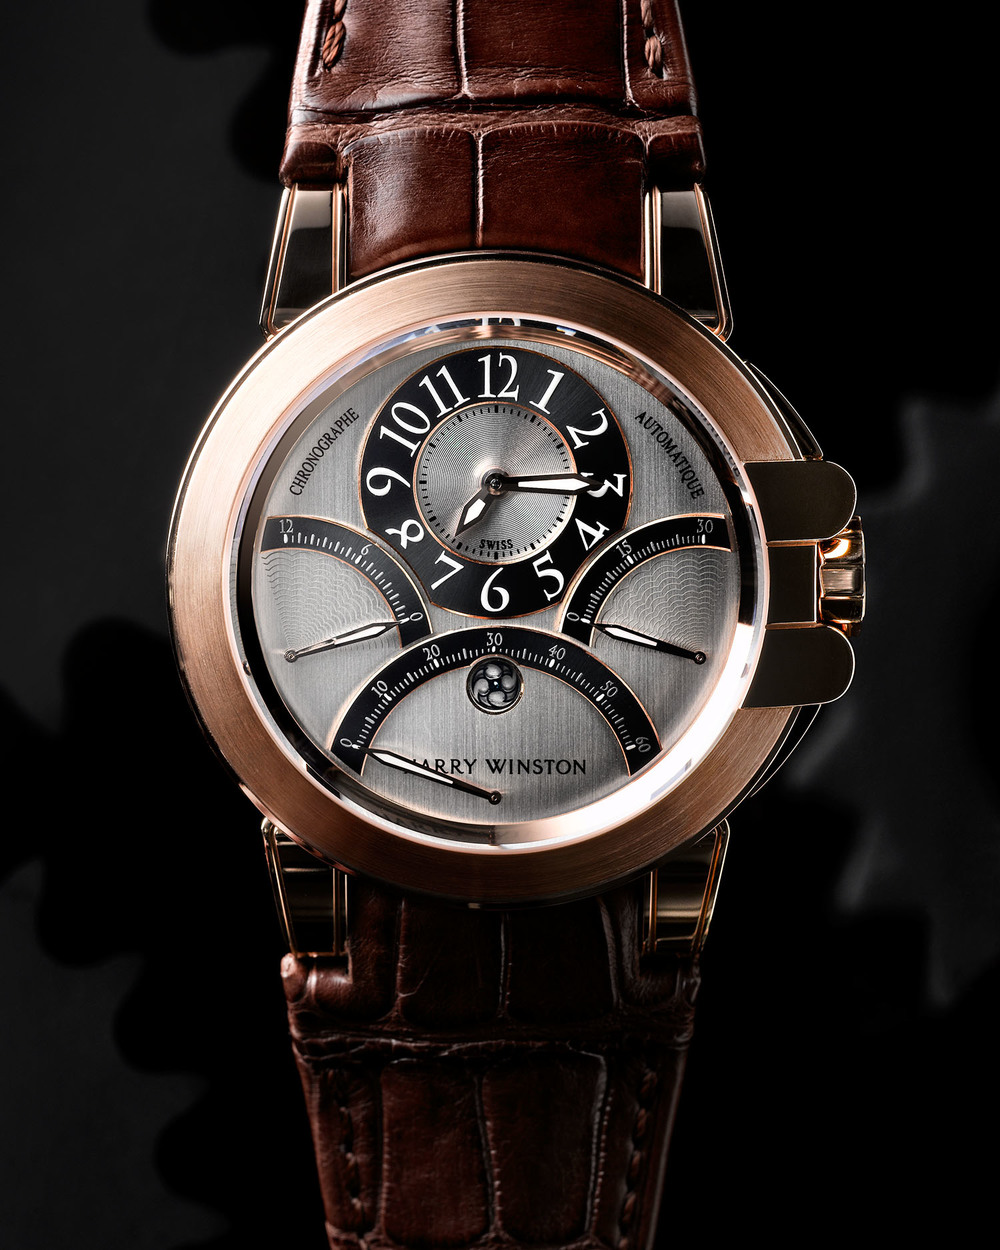 3793_ENTREE_Harry Winston.jpg